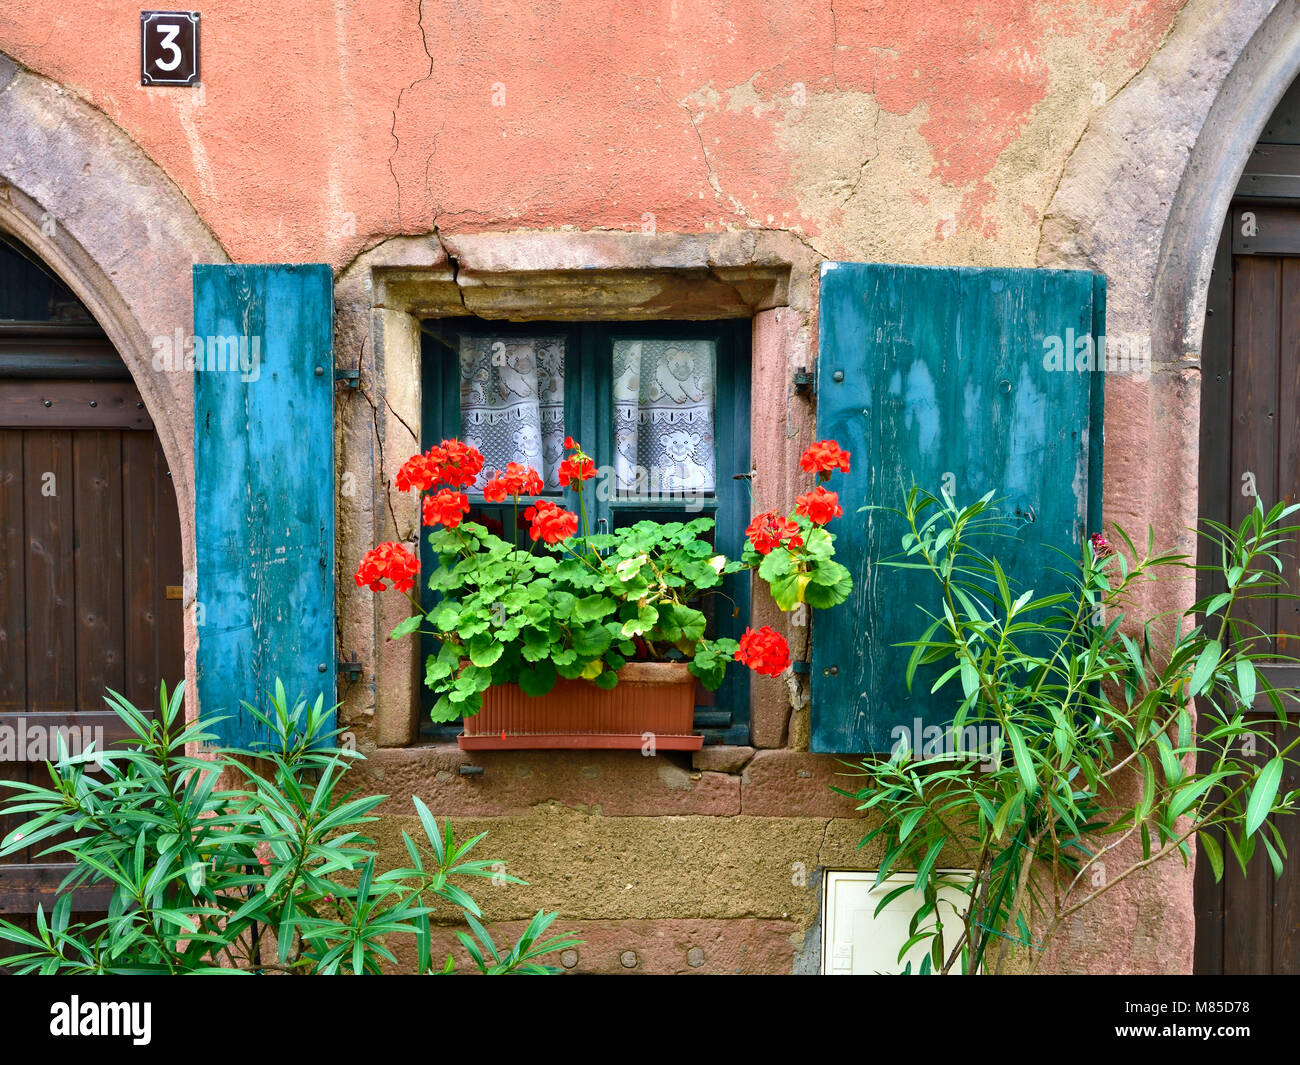 Painted shutters and a window box add a splash of colour to a medieval house in Riquewihr, Alsace, France. - Stock Image